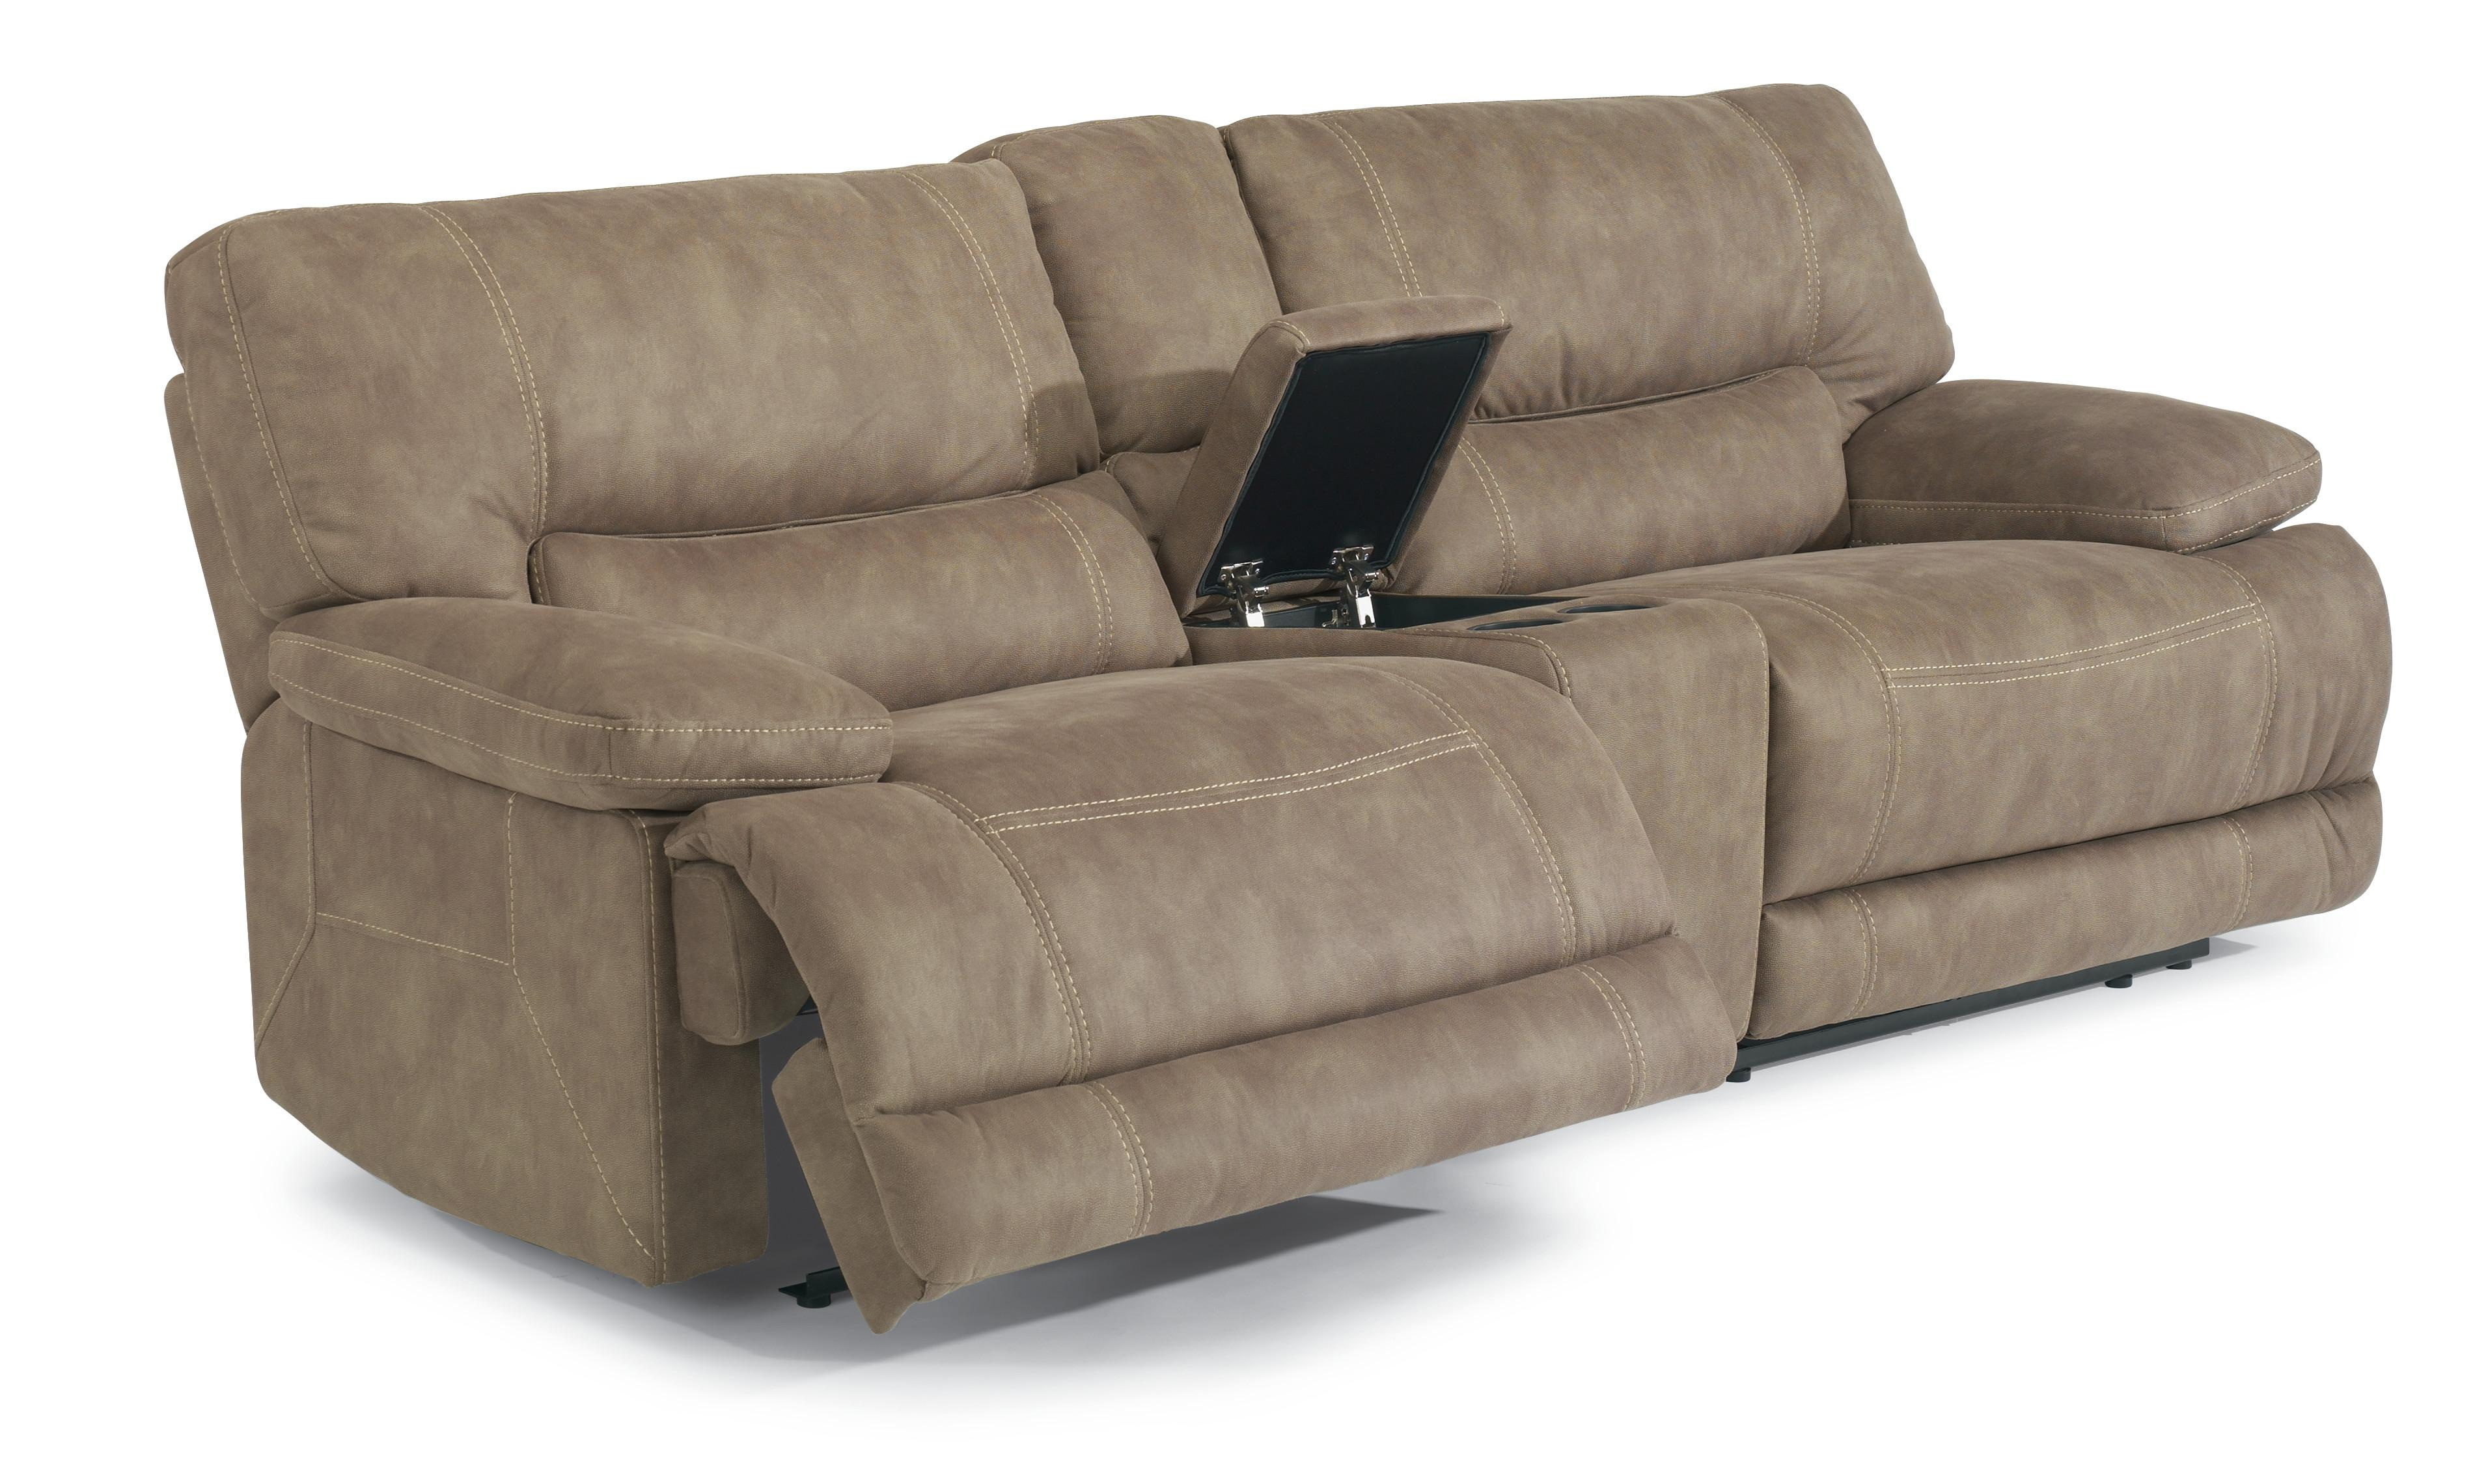 Flexsteel Latitudes Delia Power Reclining Sectional Sofa with